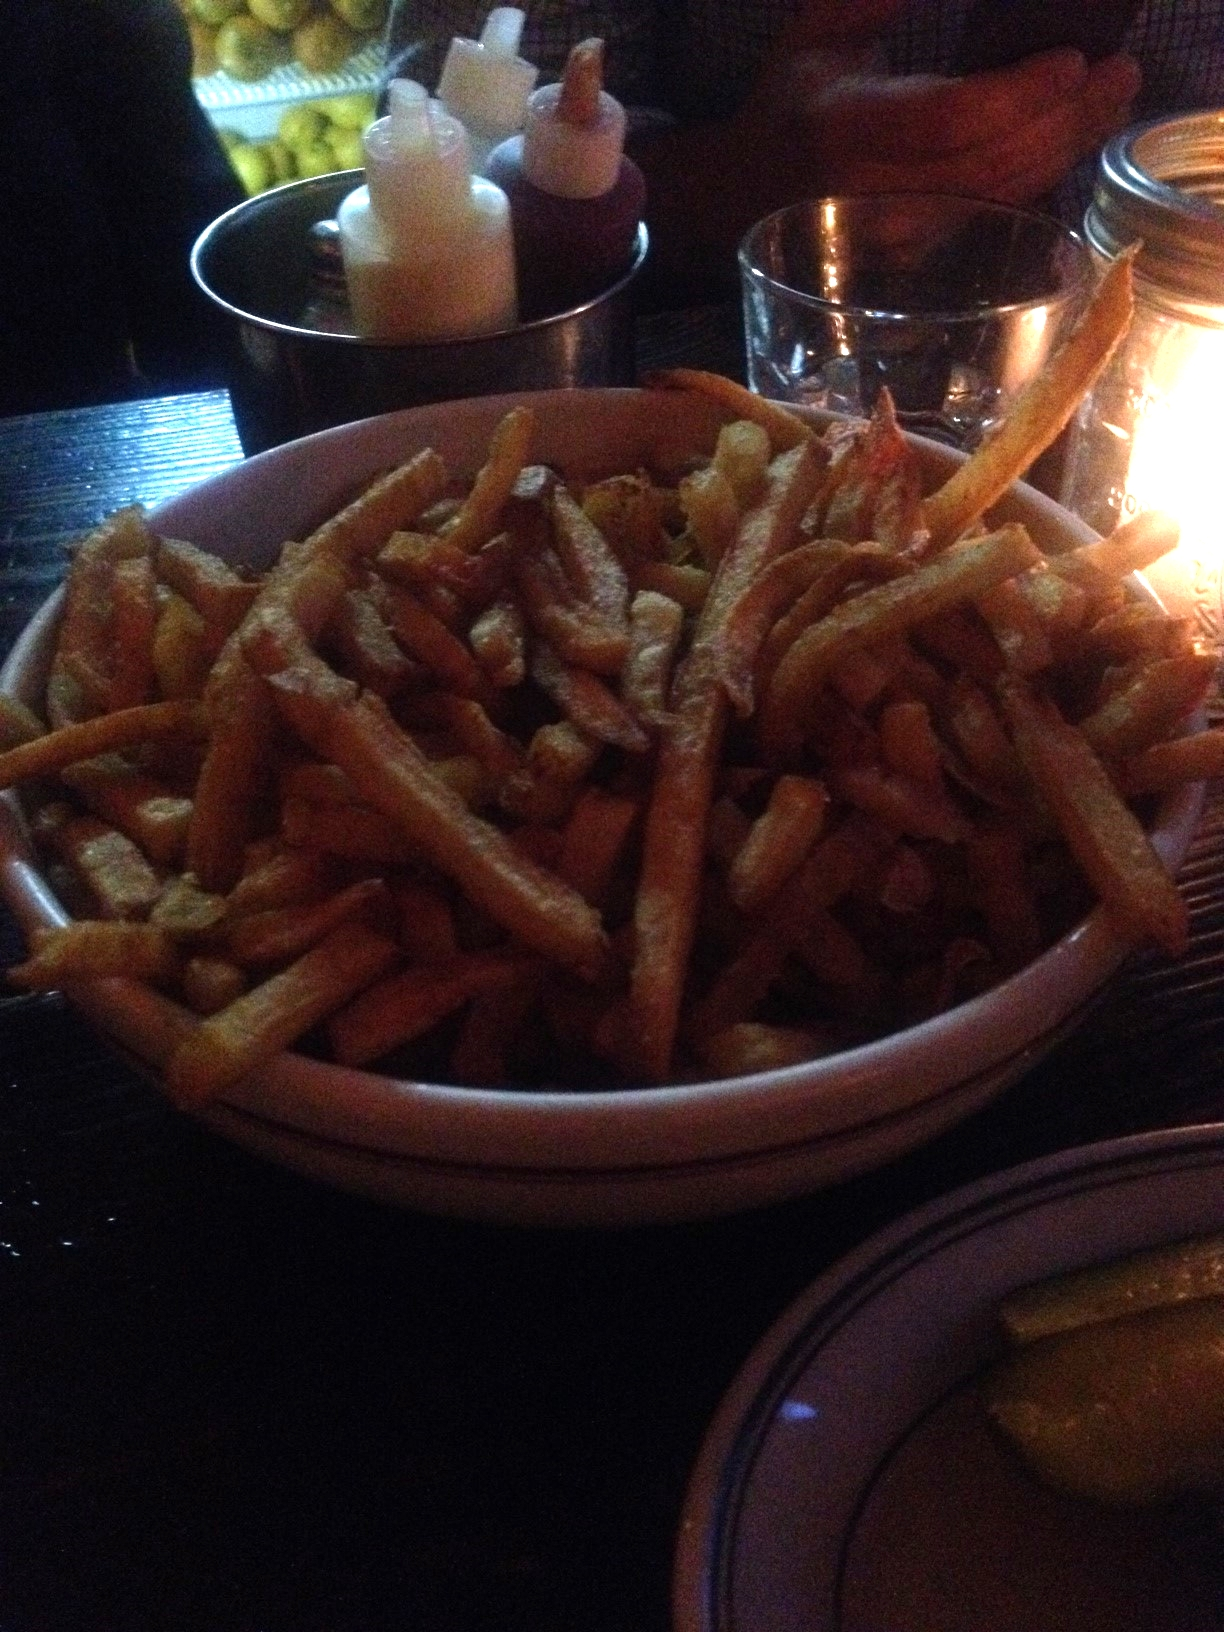 House Fries with House Ketchup, House Mayo and Big Dill Pickle Brine